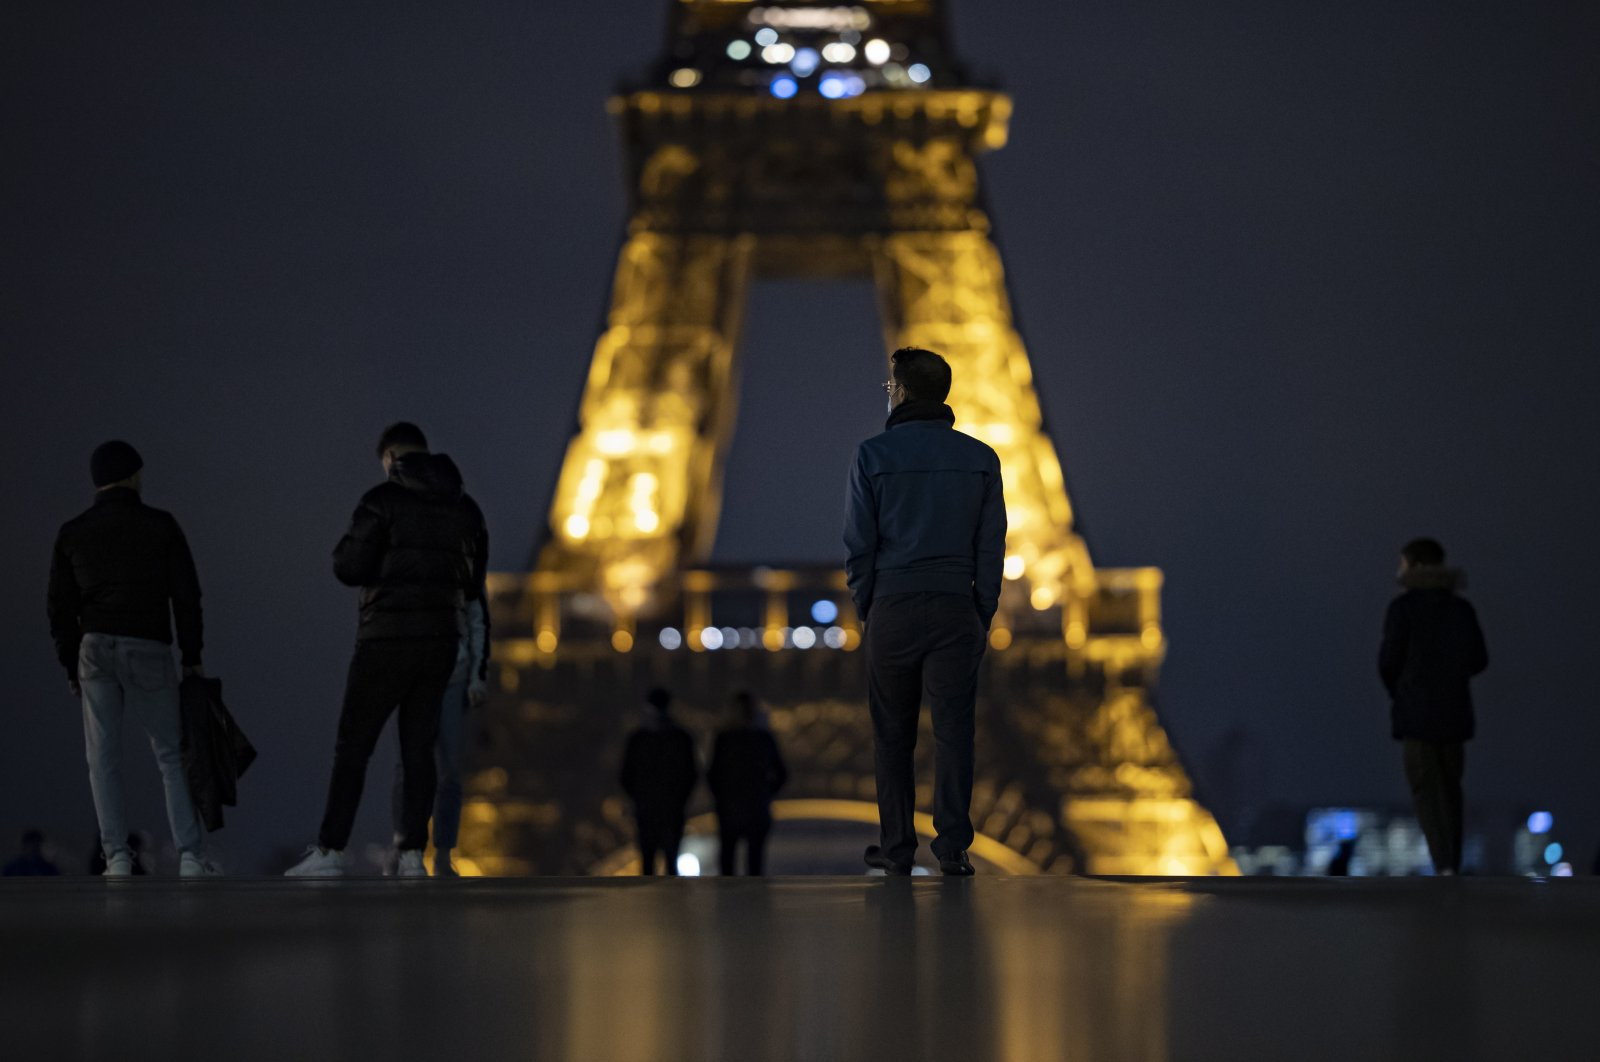 People wearing protective face masks walk near the Eiffel Tower at nightfall, just hours before a city-wide night-time curfew goes into effect in Paris, France, Oct. 16, 2020. (EPA Photo)